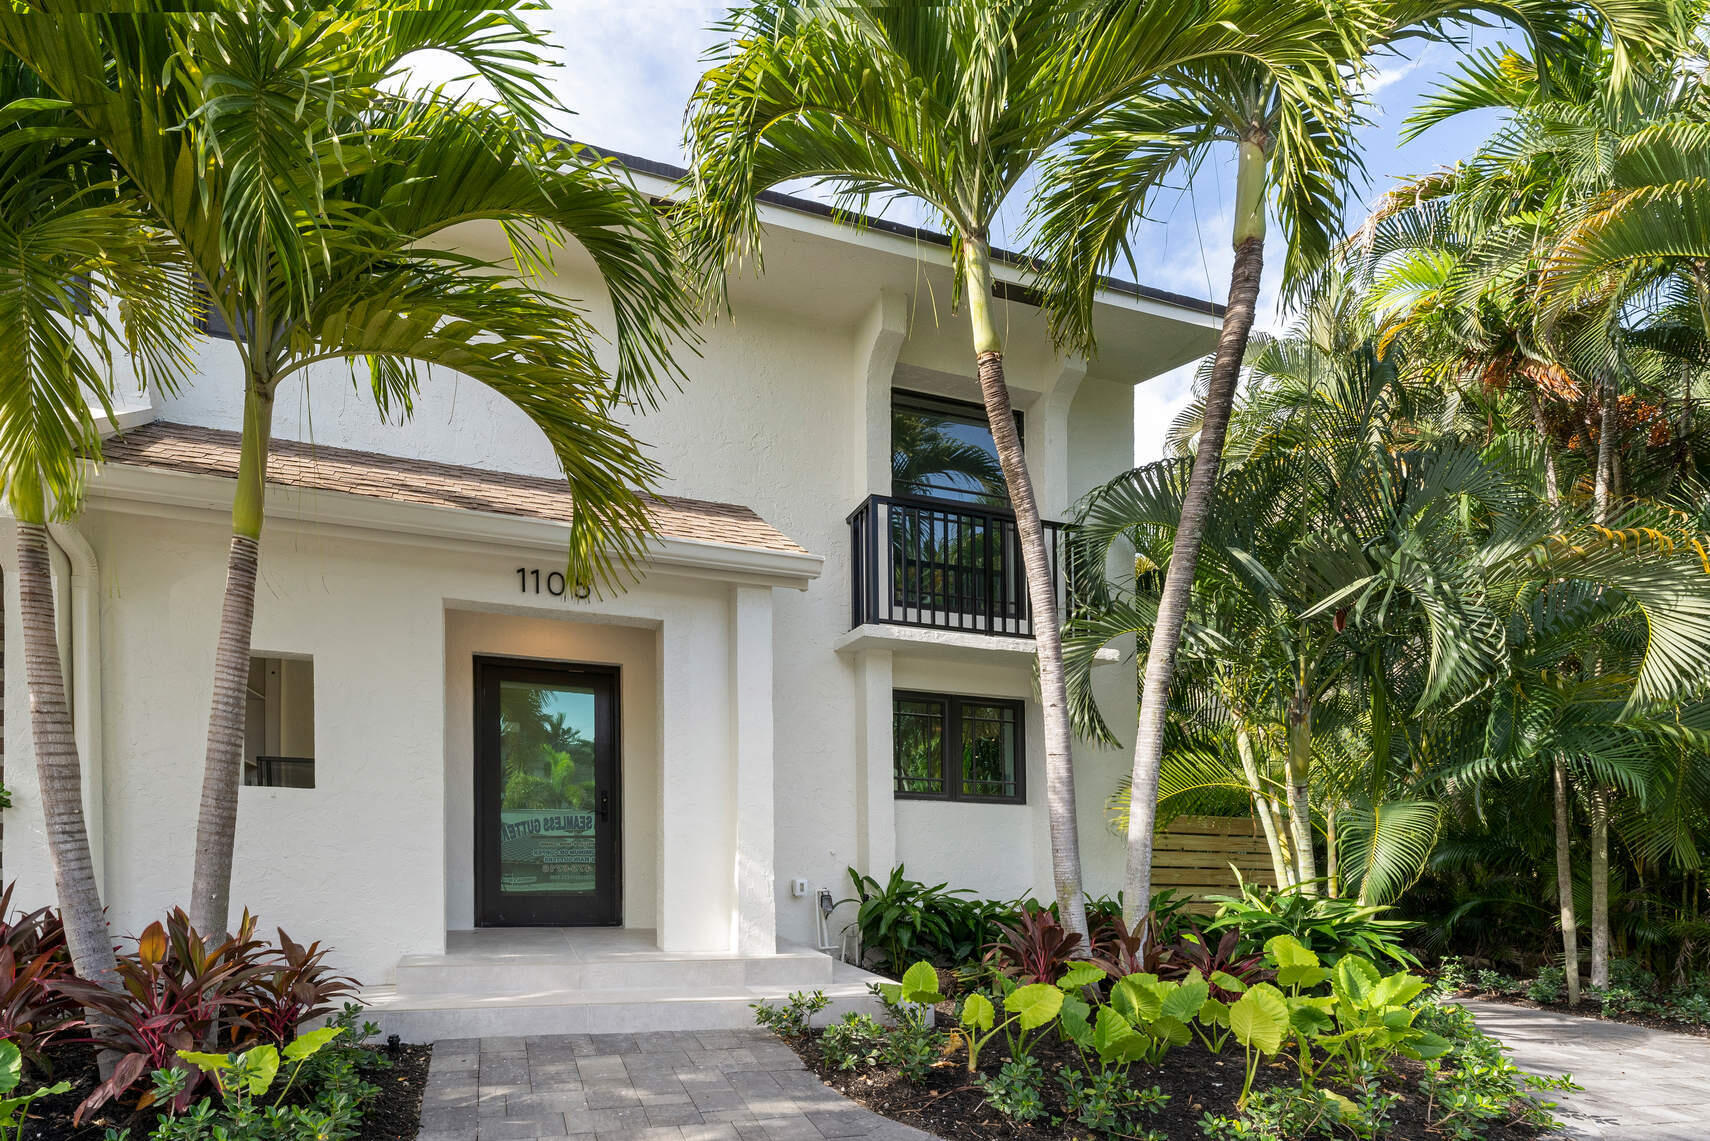 1105 Russell Drive - 2/2 in HIGHLAND BEACH ISLES